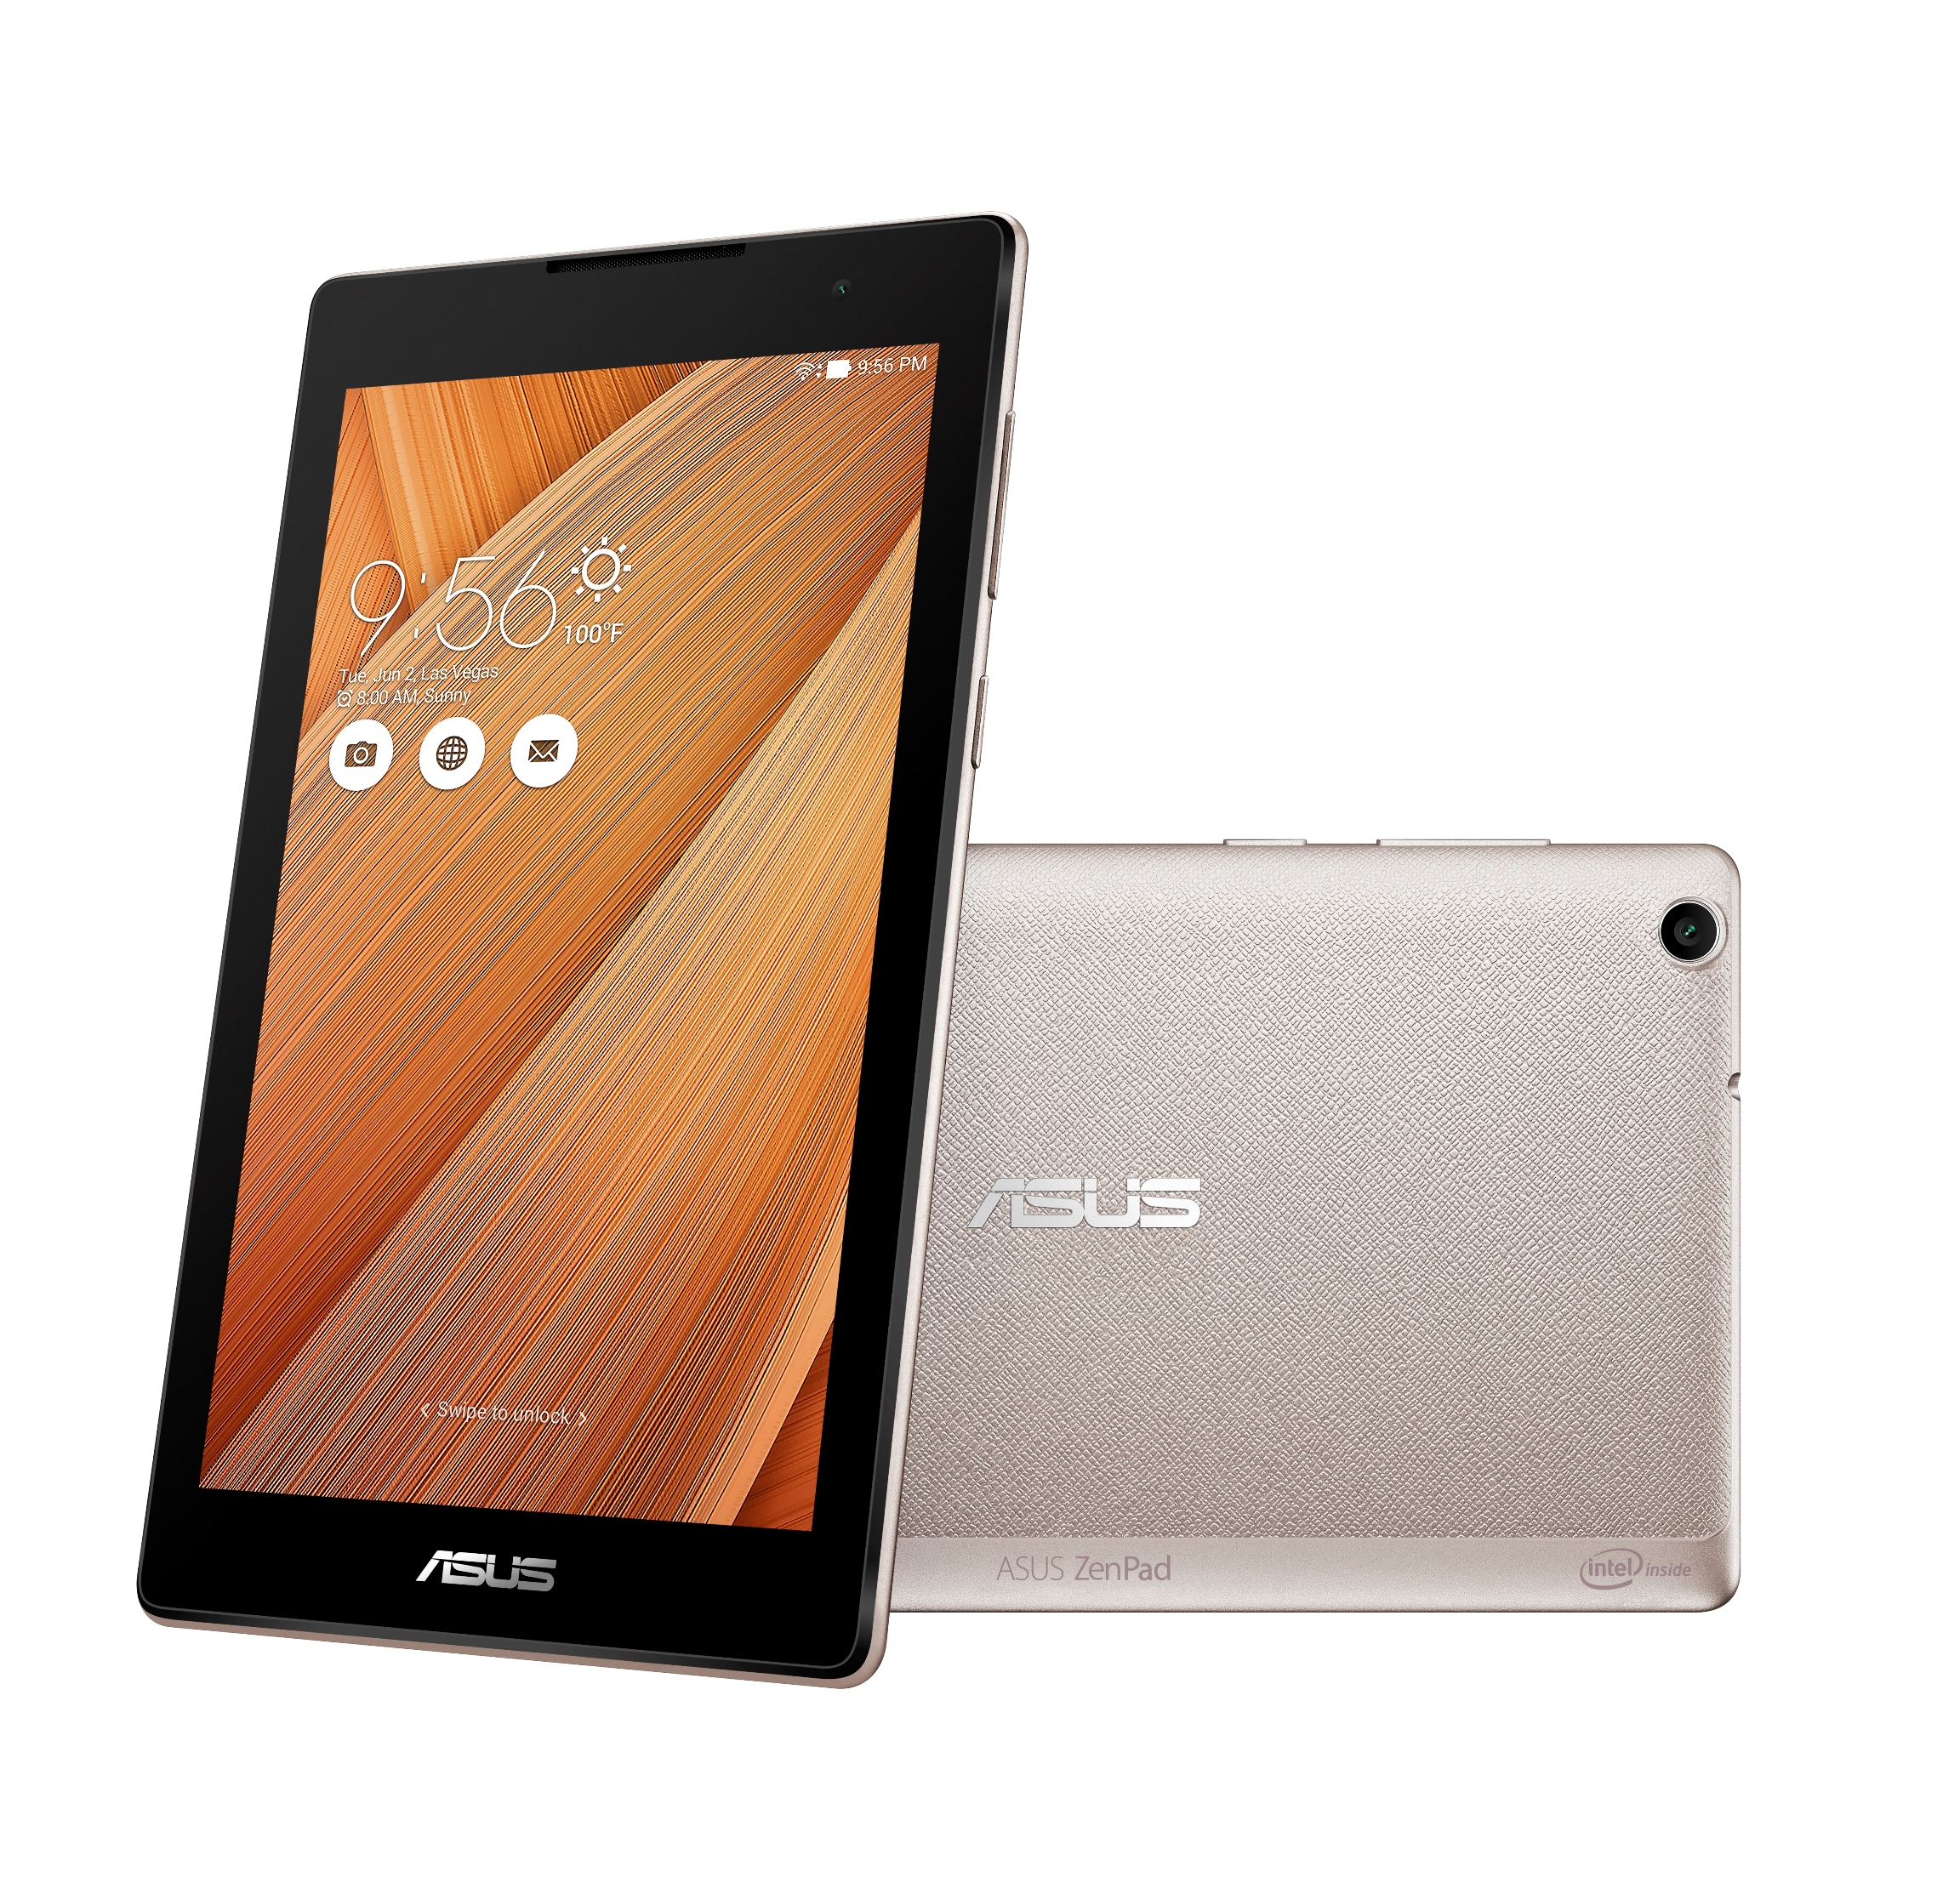 Asus ZenPad C7 x3-C3200/1GB/16GB/7''/1024x600/IPS/Android 5.0/Metallic